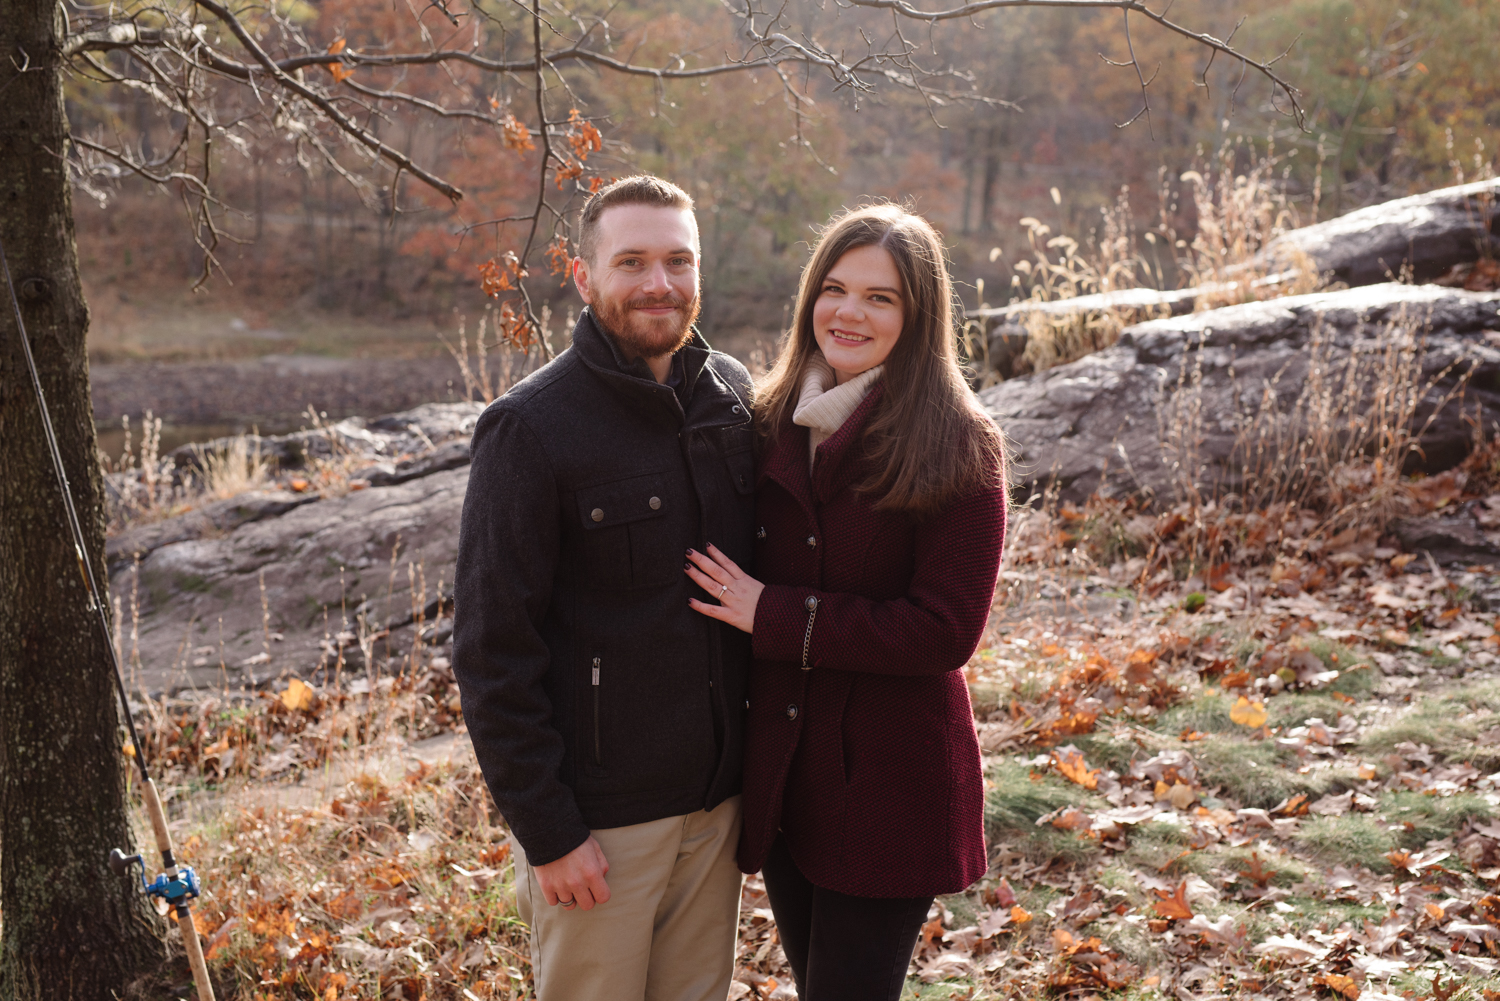 Amy+Brian- Garret Mountain Engagement Session- Fall Nature- Film Photography-New Jersey- Olivia Christina Photo-3.JPG